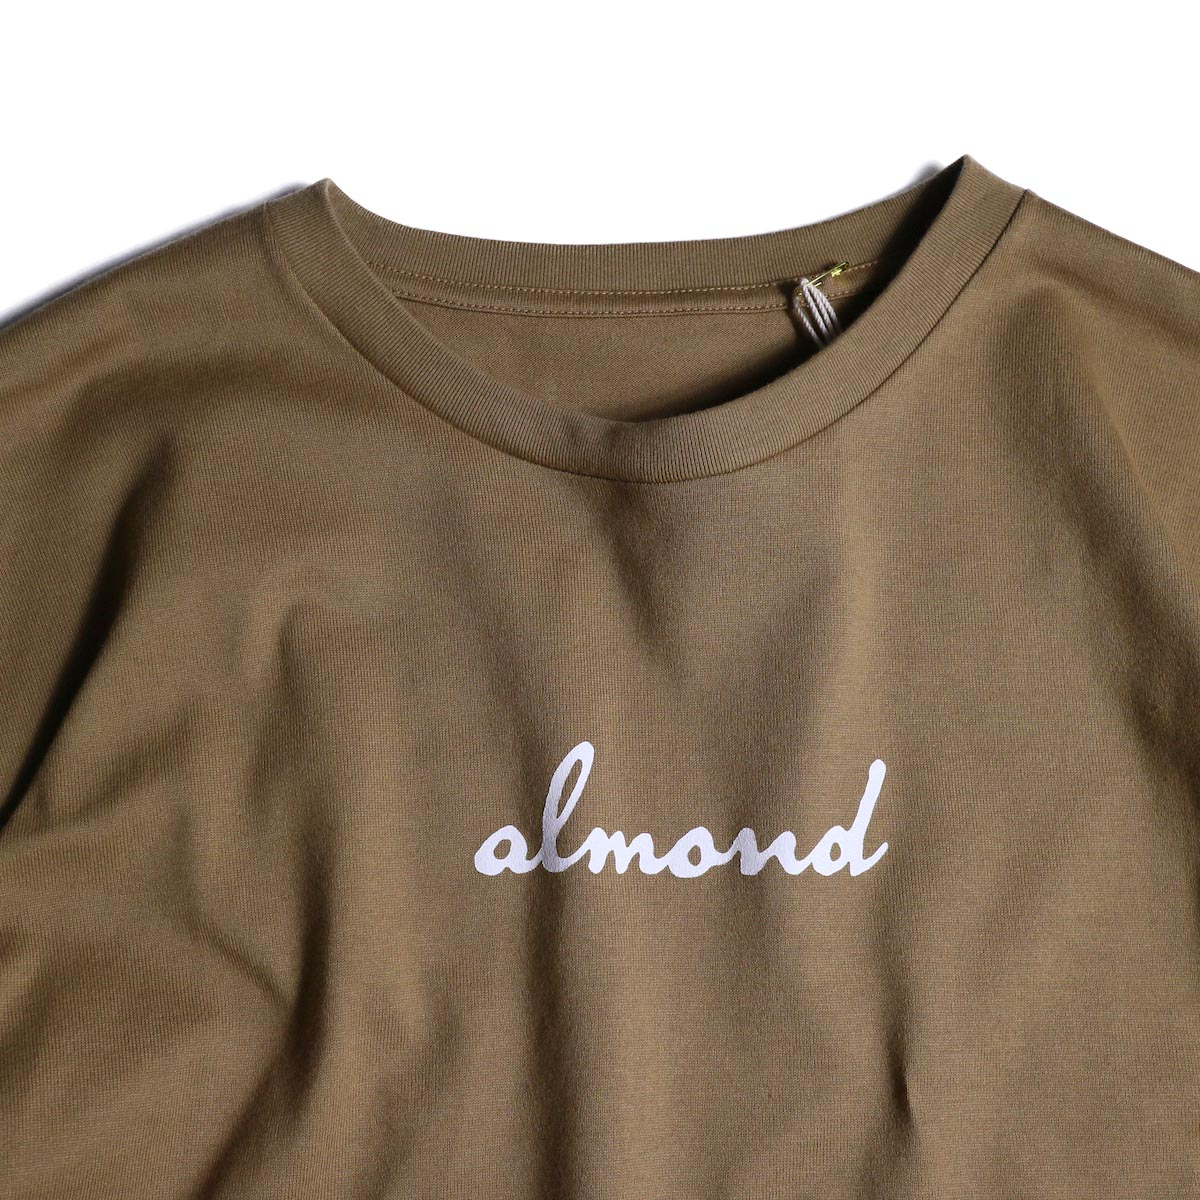 MASTER & Co. / Print T-Shrit (almond)ボートネック